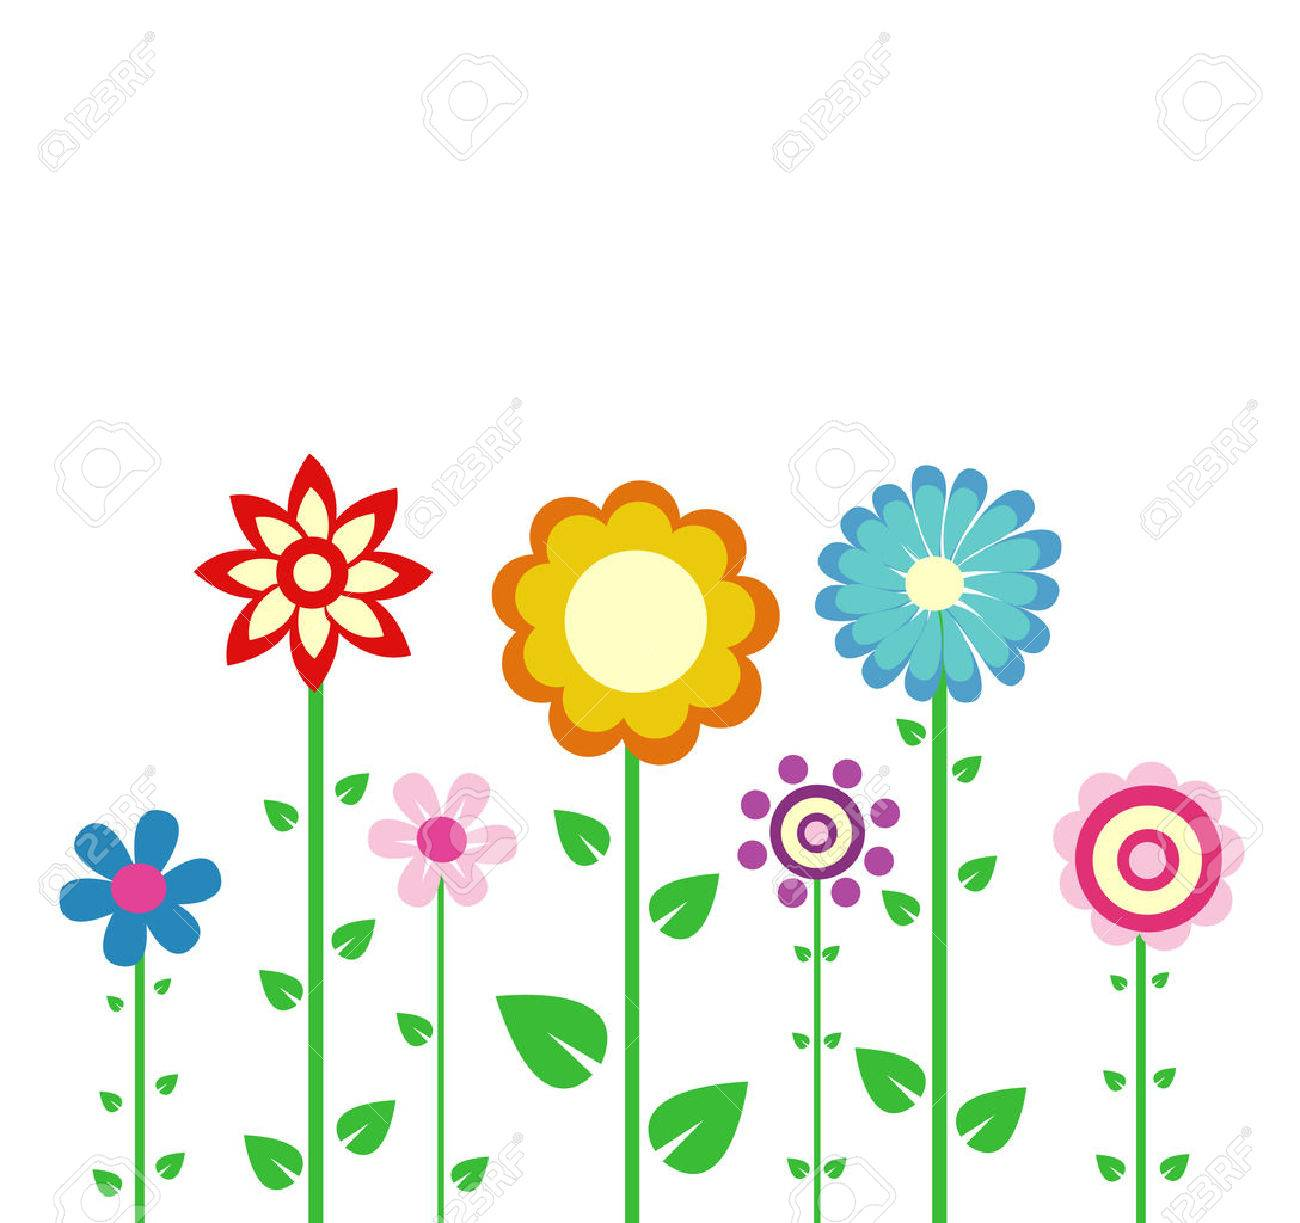 colorful spring flowers vector illustration - 37449520